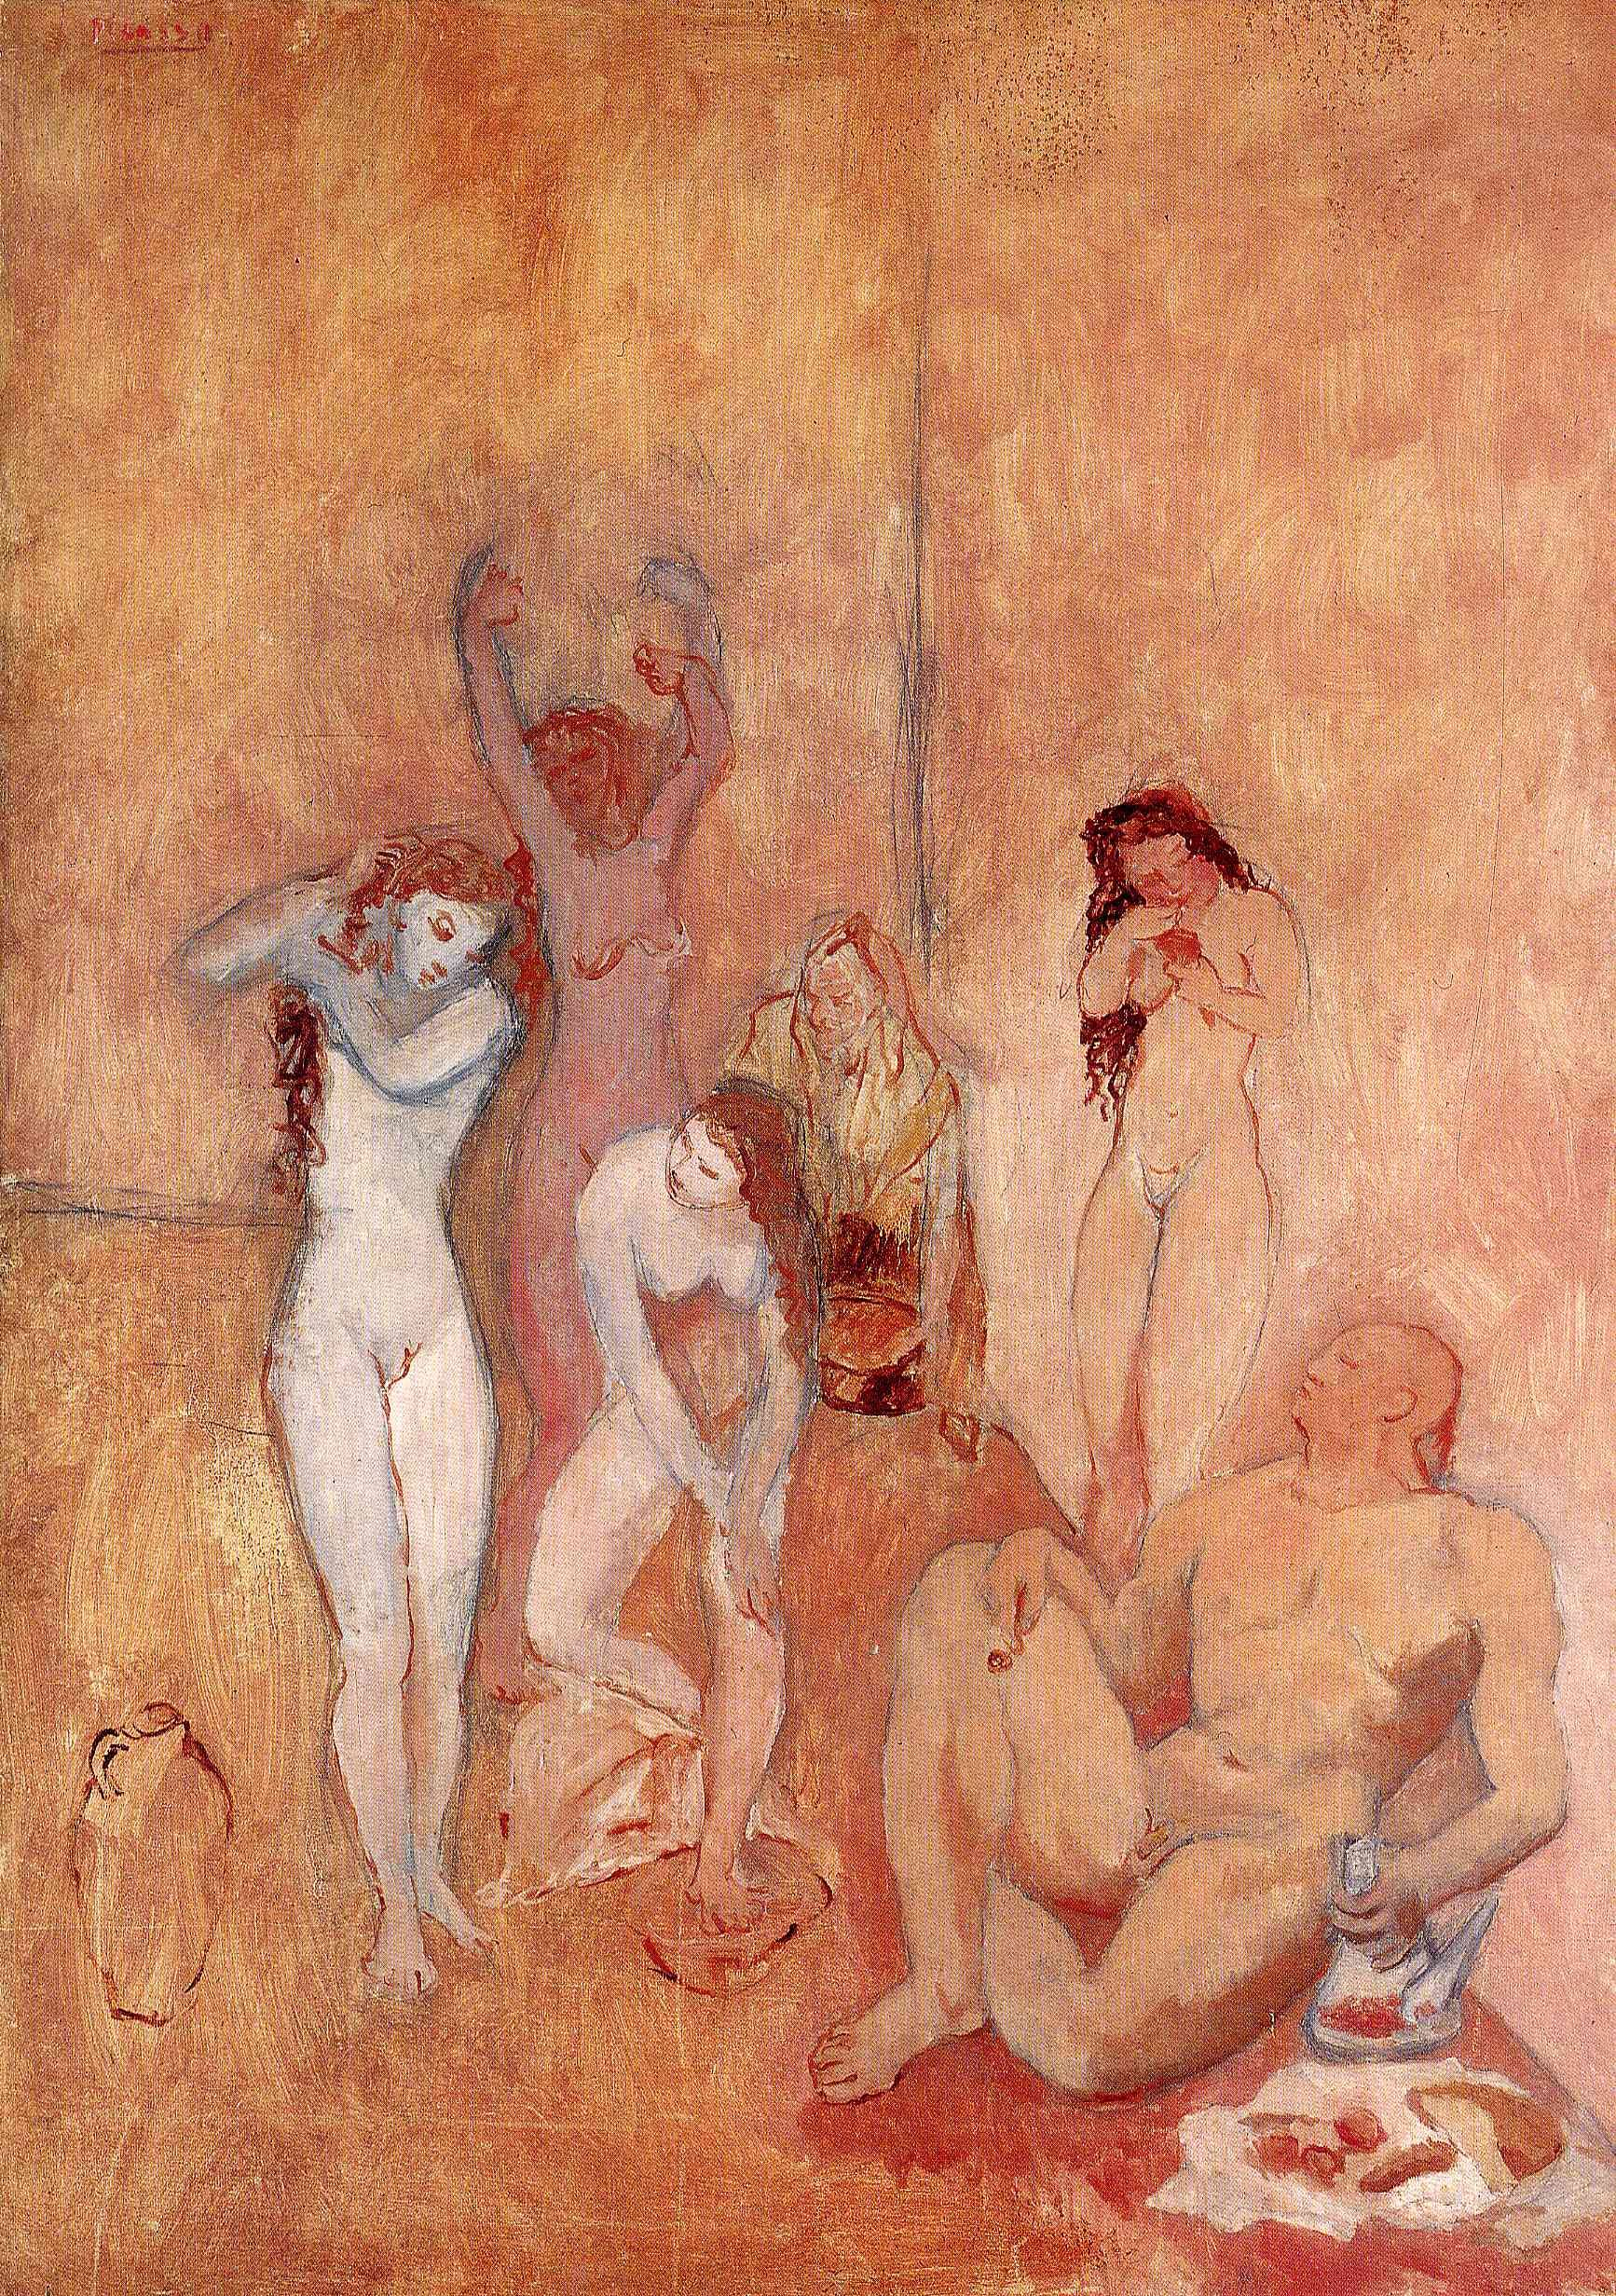 Pablo Picasso. The Harem. 1906. Rose Period. Painted while in Gósol, in Catalonia.